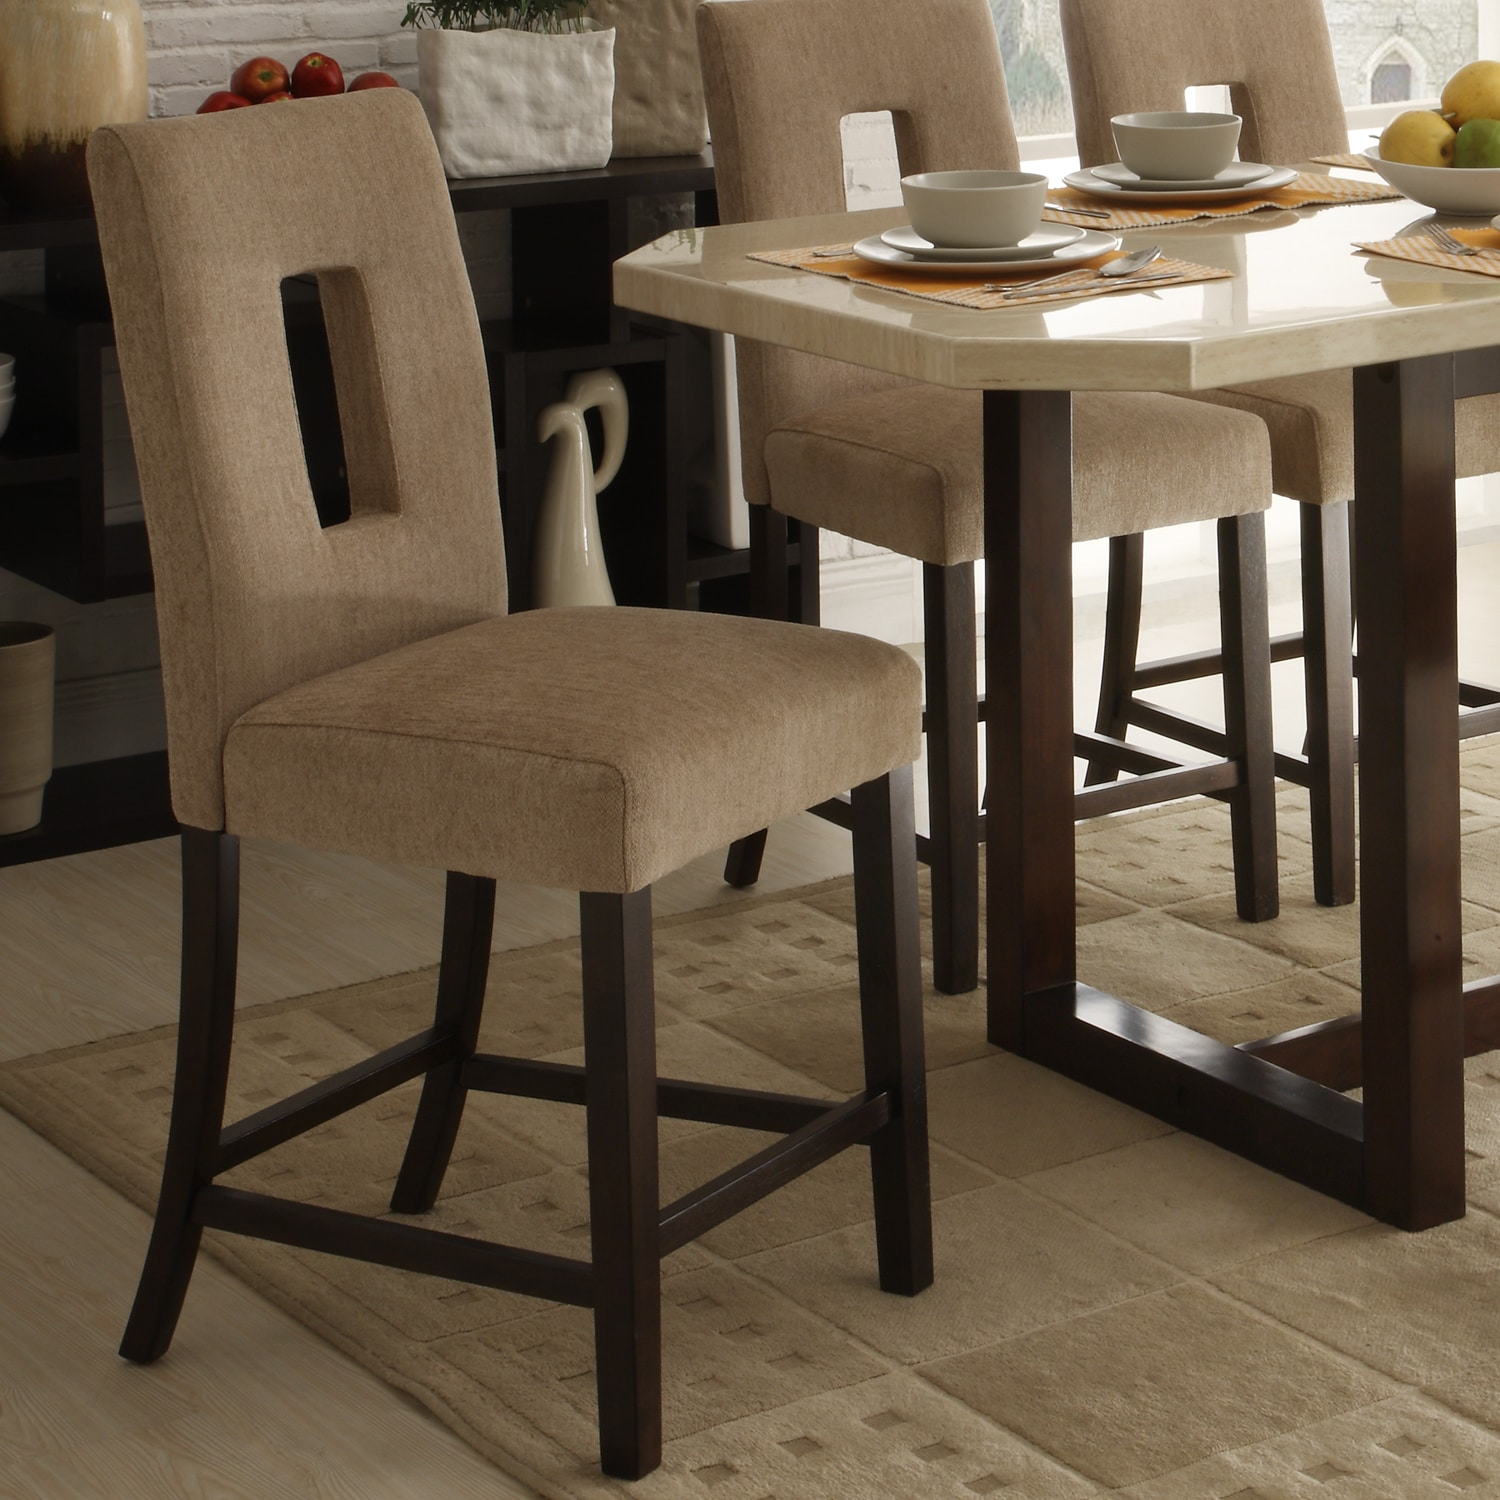 Upholstered Bar Chairs Camille Beige Fabric Upholstered Counter Height High Back